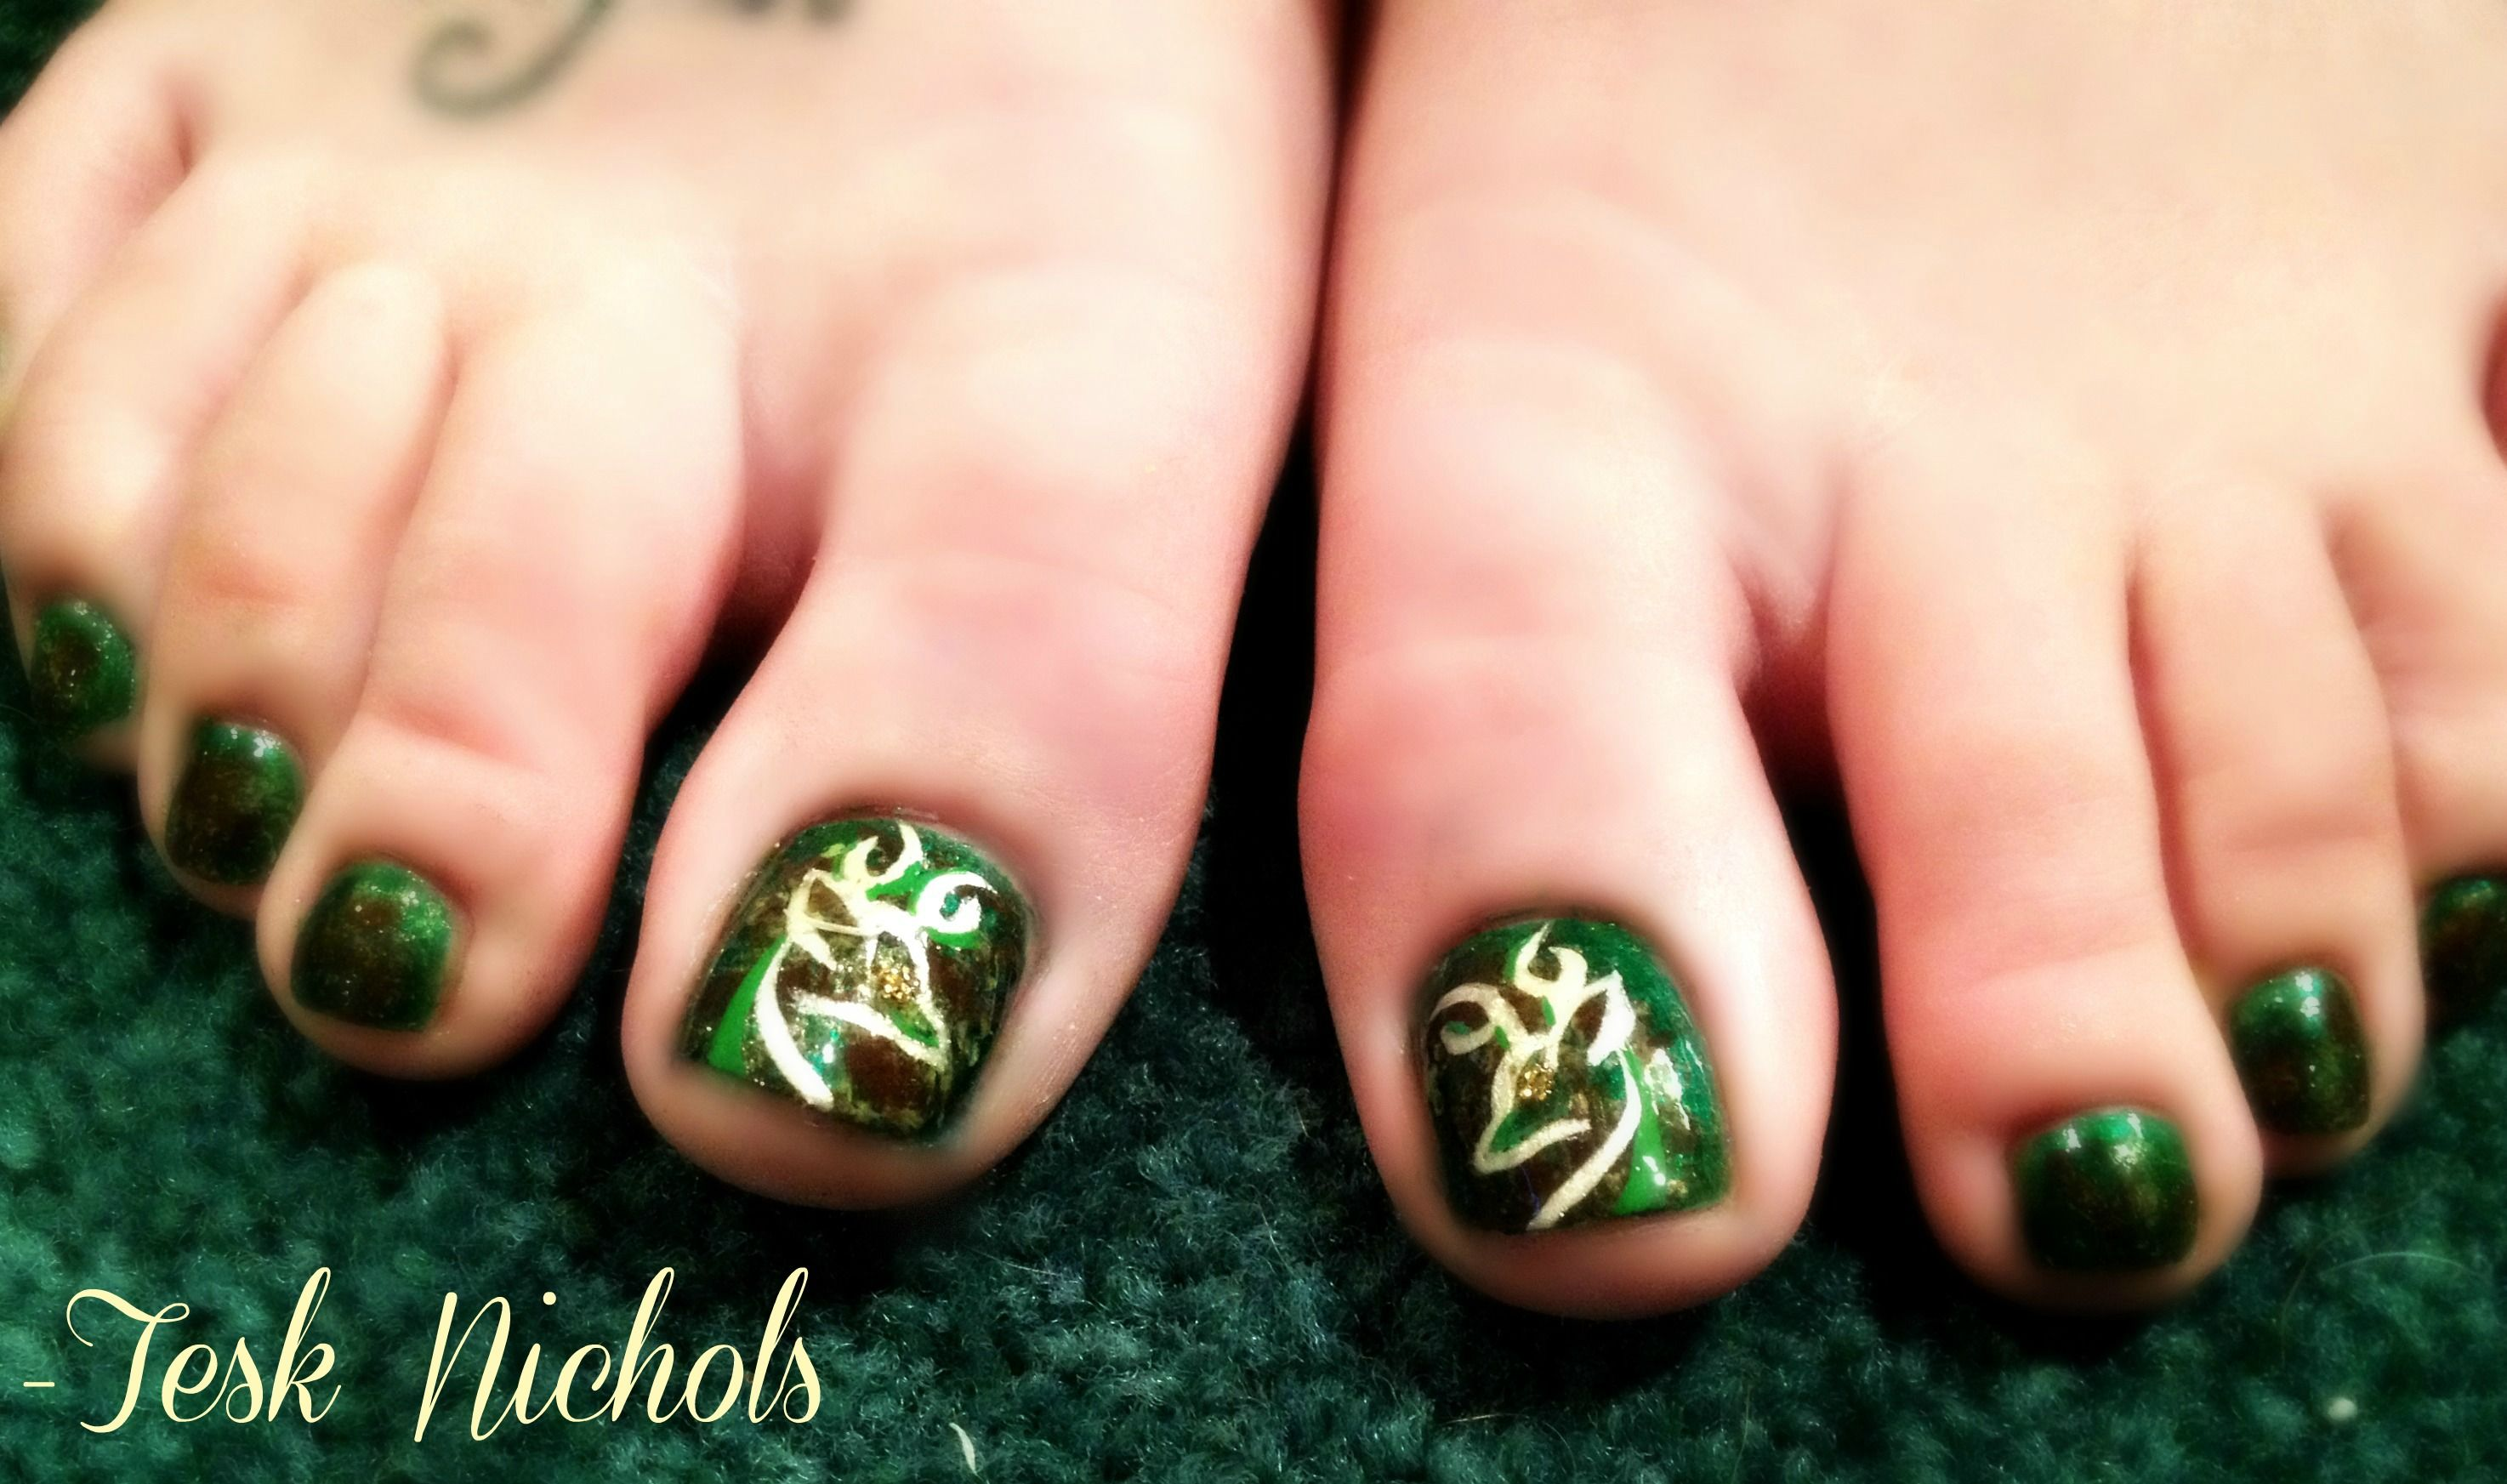 Camo Toenails With Browning Branding Country Nail Art Country